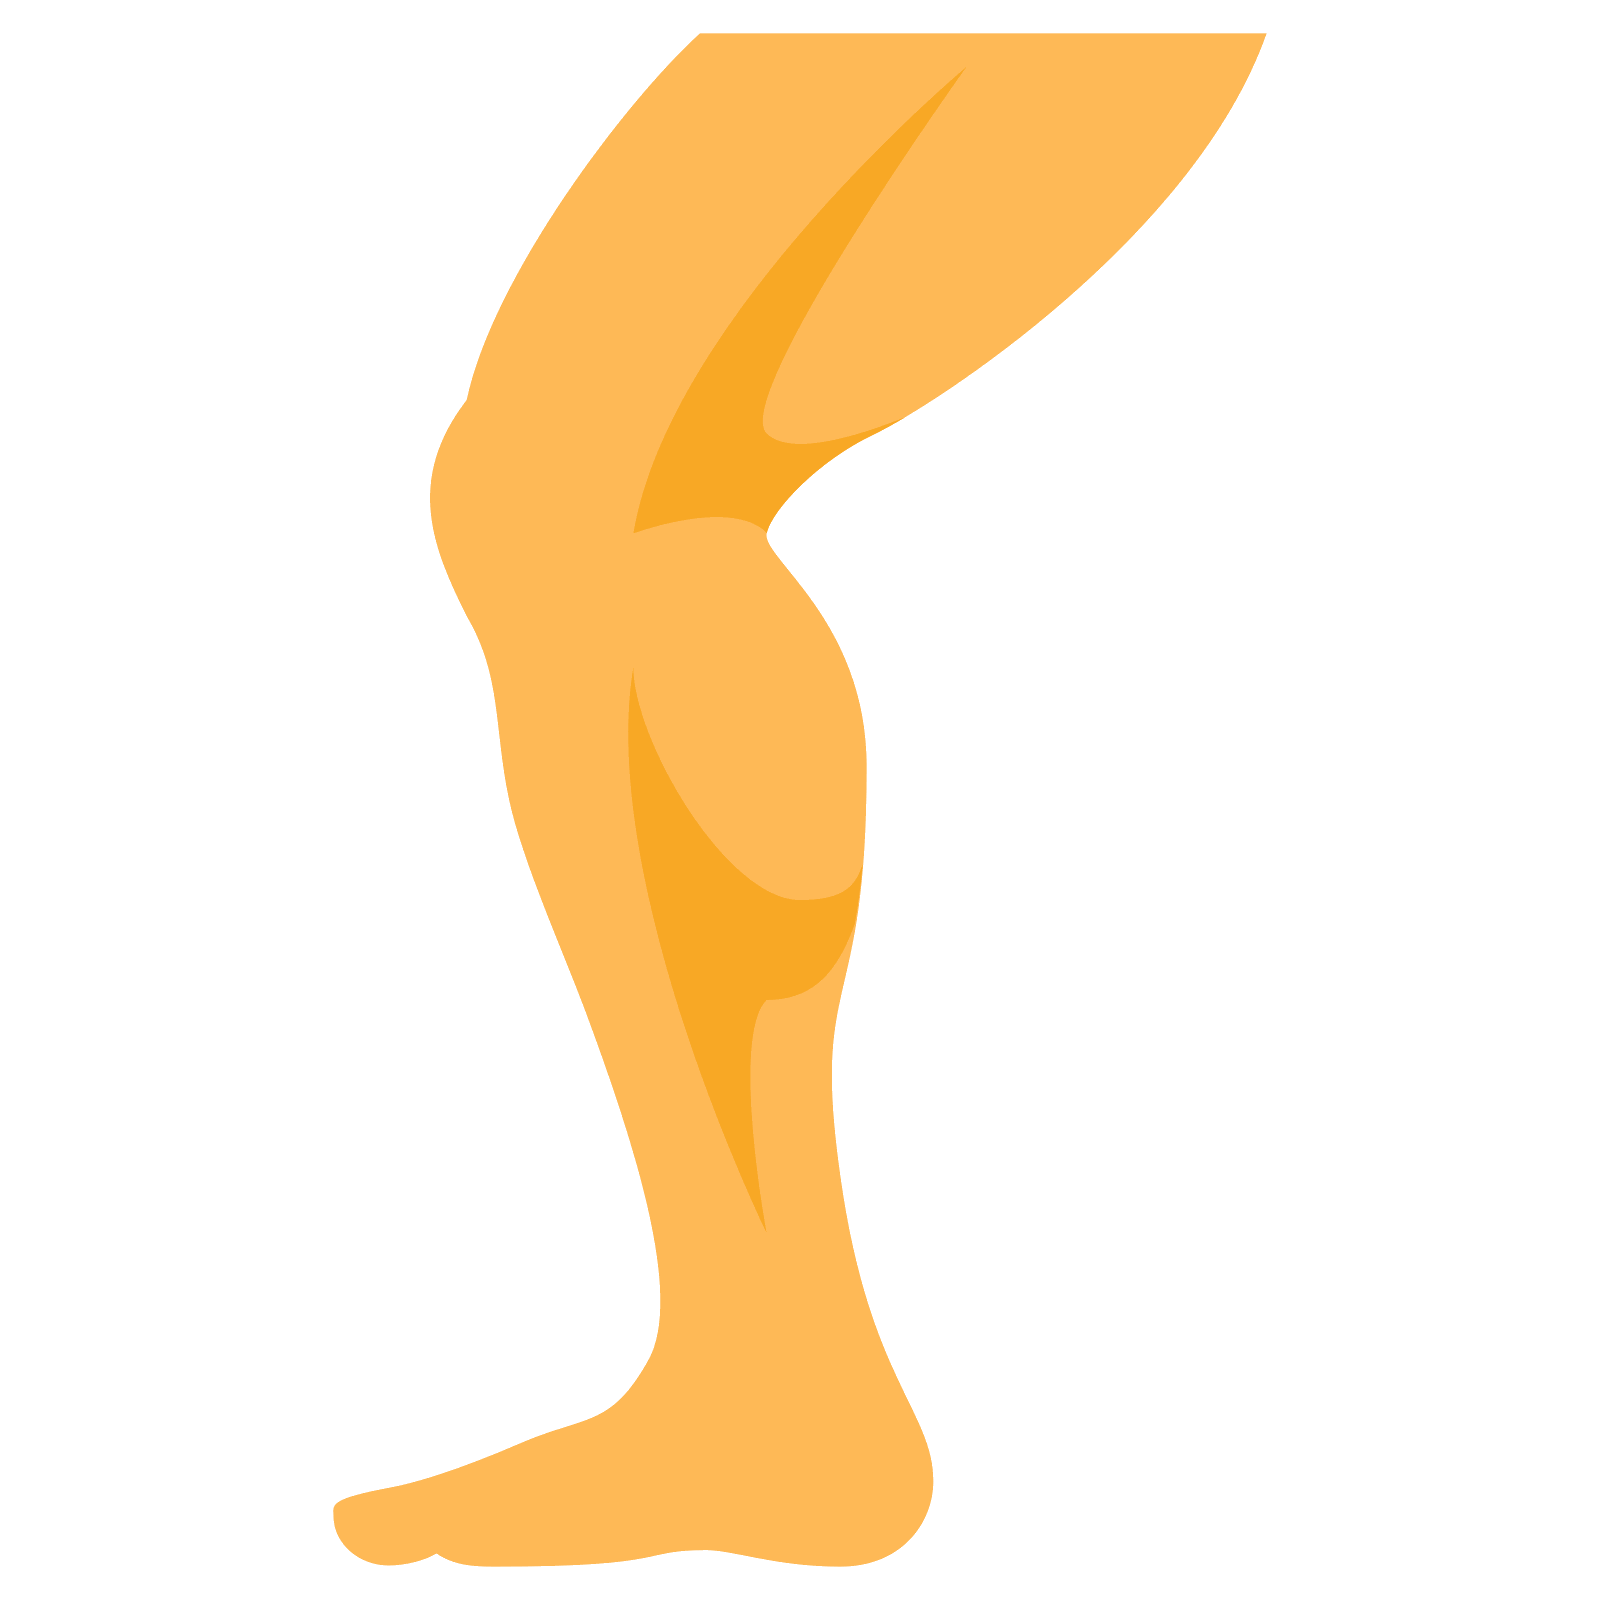 Legs vector png. Leg icon free download